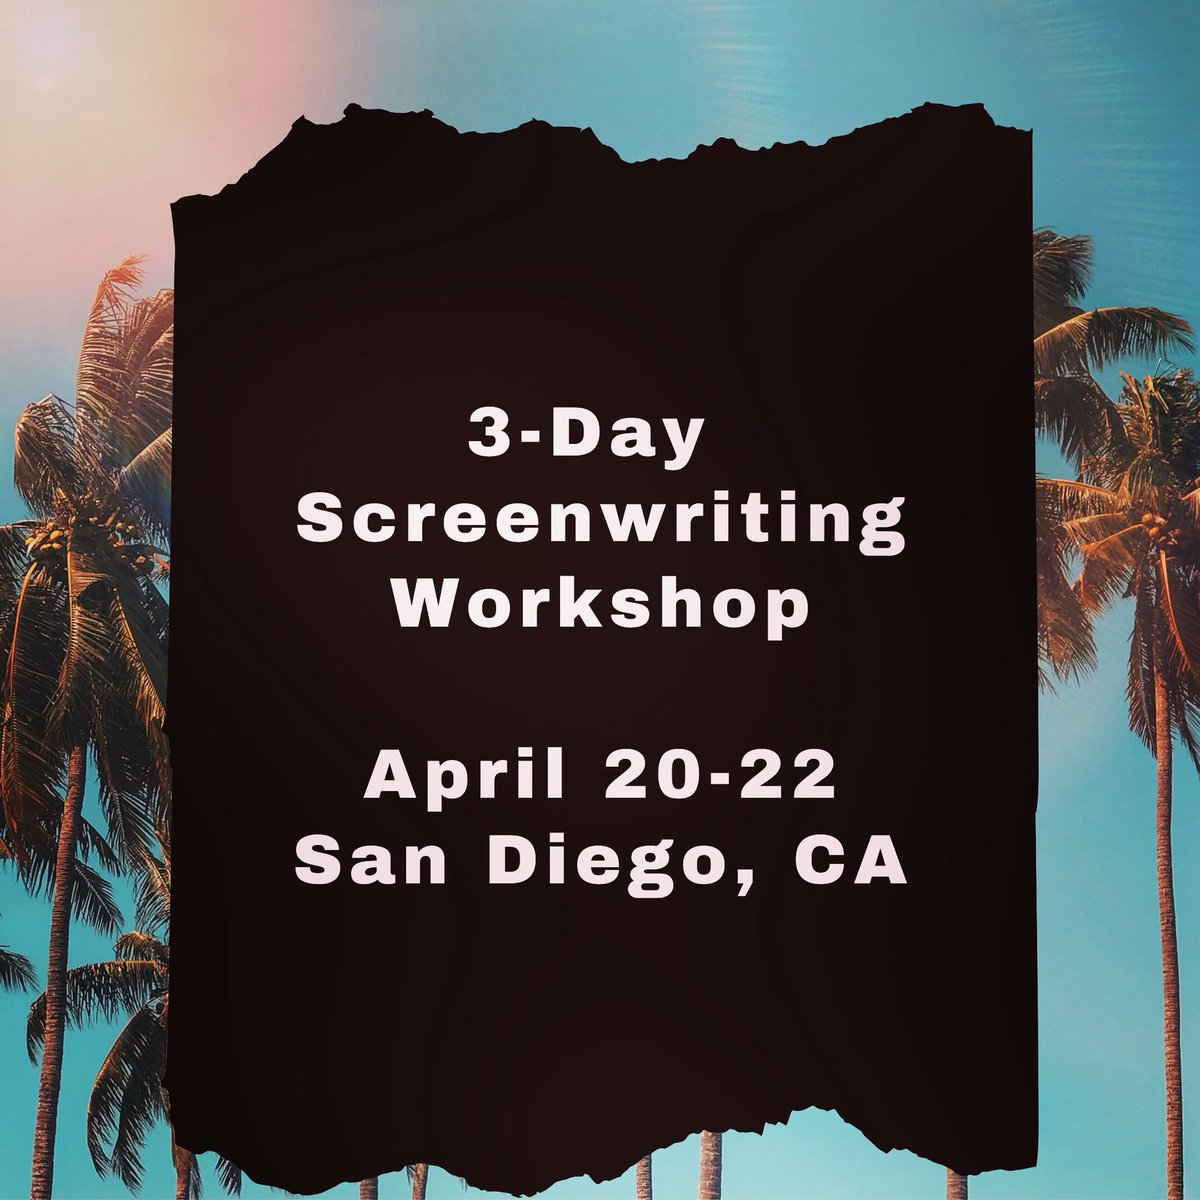 Site will go live Feb. 27!    Email us for more info: hello@socalscreenplay.com  #screenplay #writerworkshop #bestoriginalscreenplay #screenwritingworkshop #script #bestscreenplay #filmproducers #socal #sandiego #sunnysandiego #aspiringwriter #studentwriter #writersblockpic.twitter.com/VILG00Ja1b